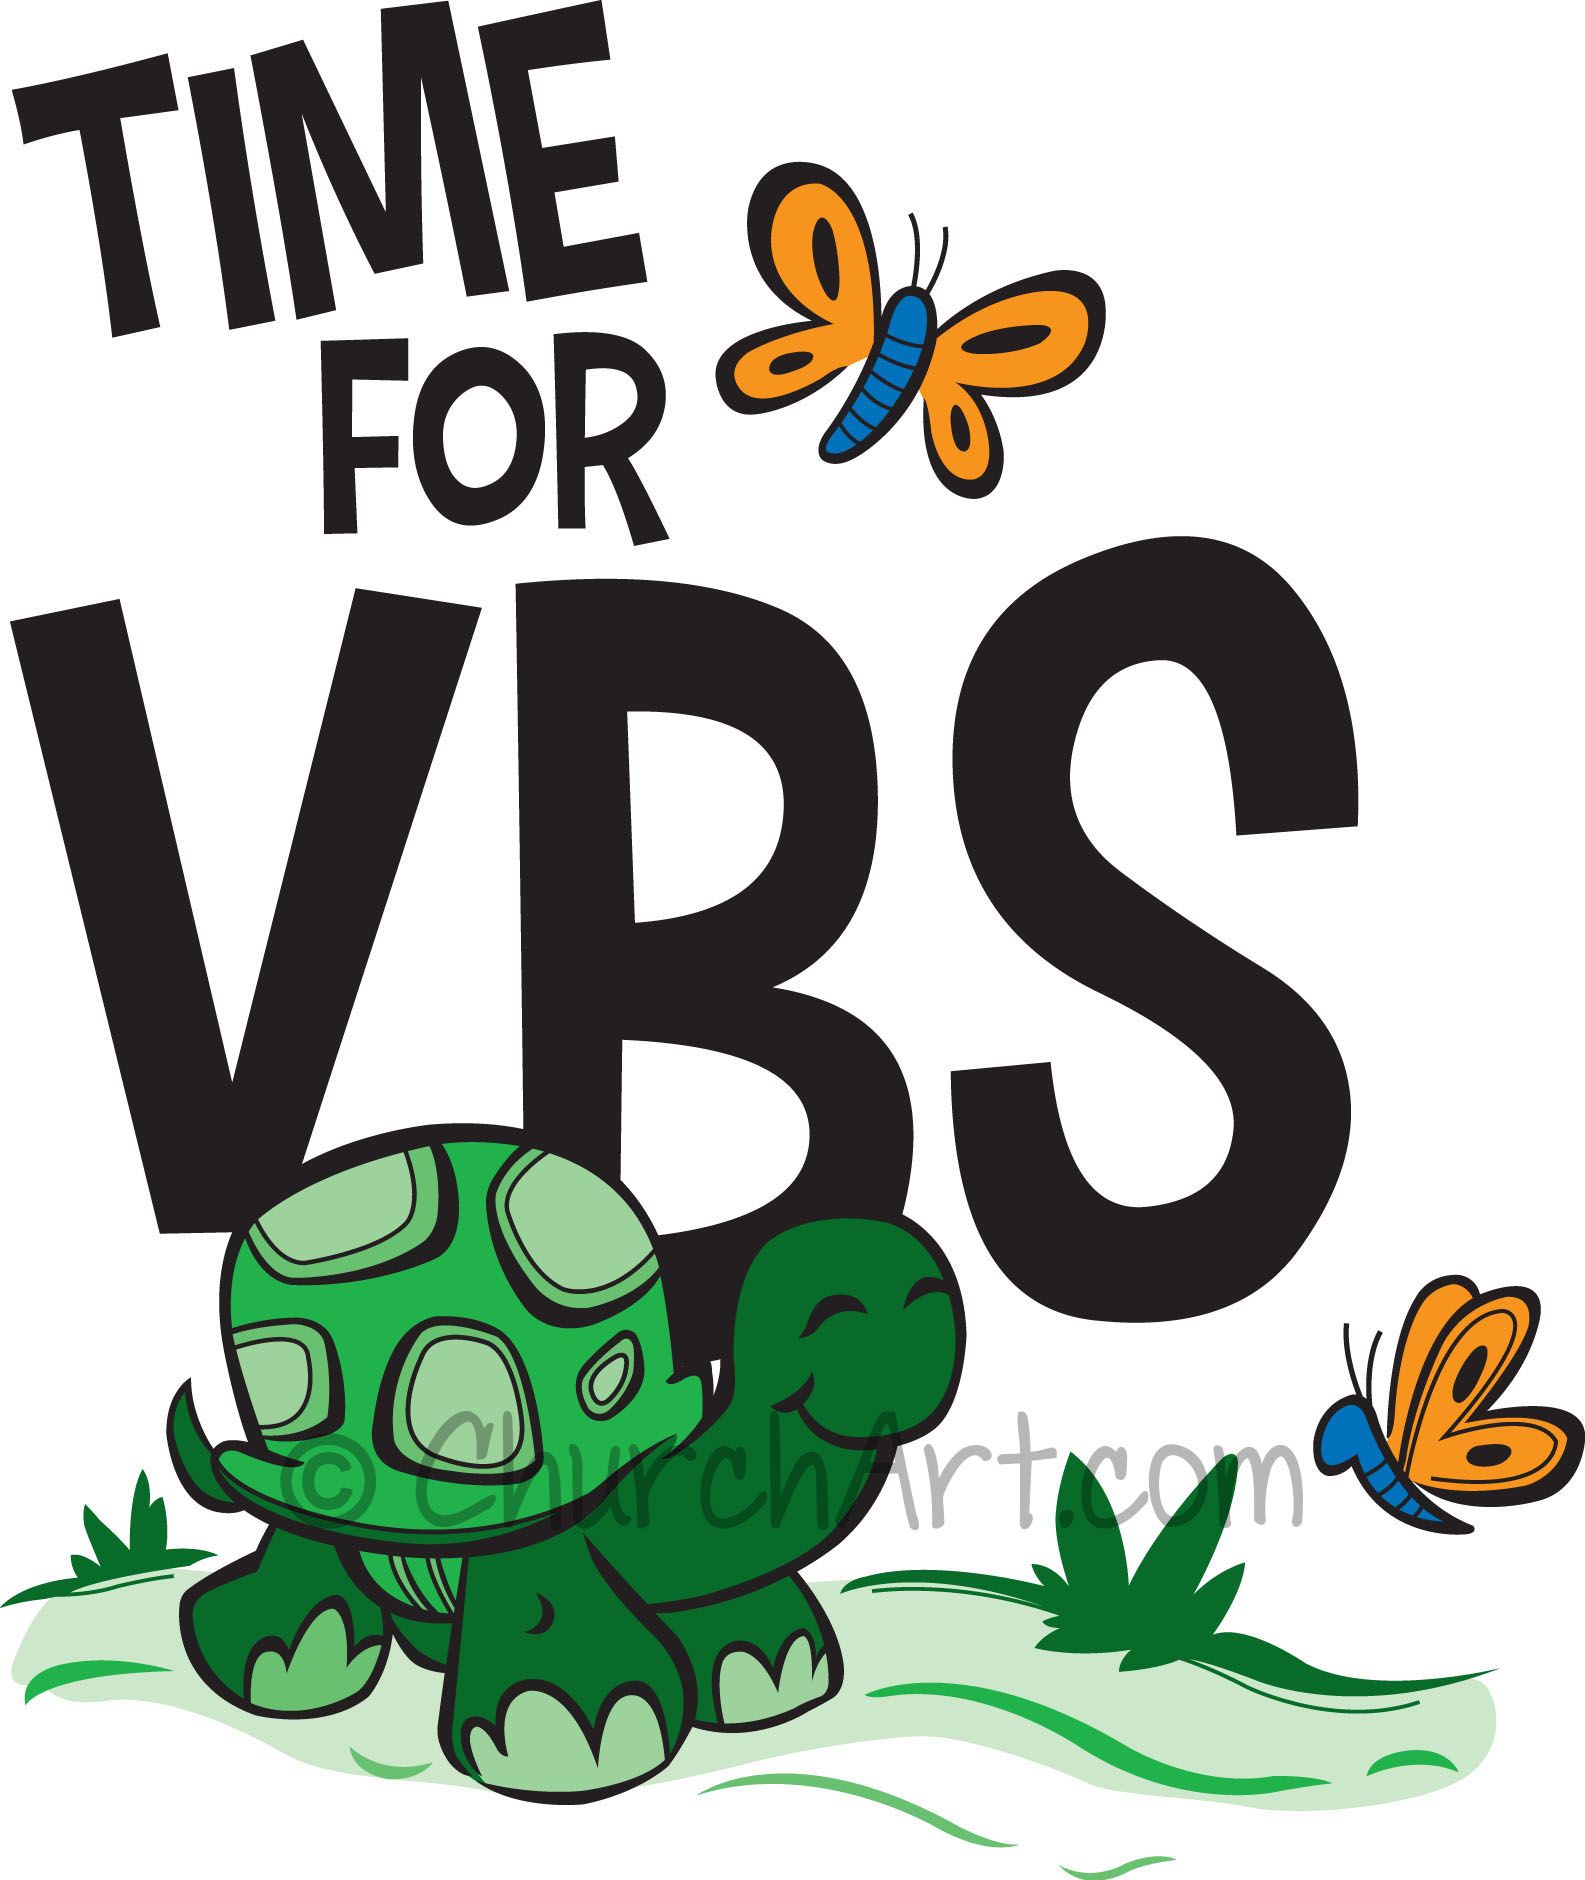 Vacation Bible School Clip-Art with turtle, two butterflies and TIME FOR VBS caption